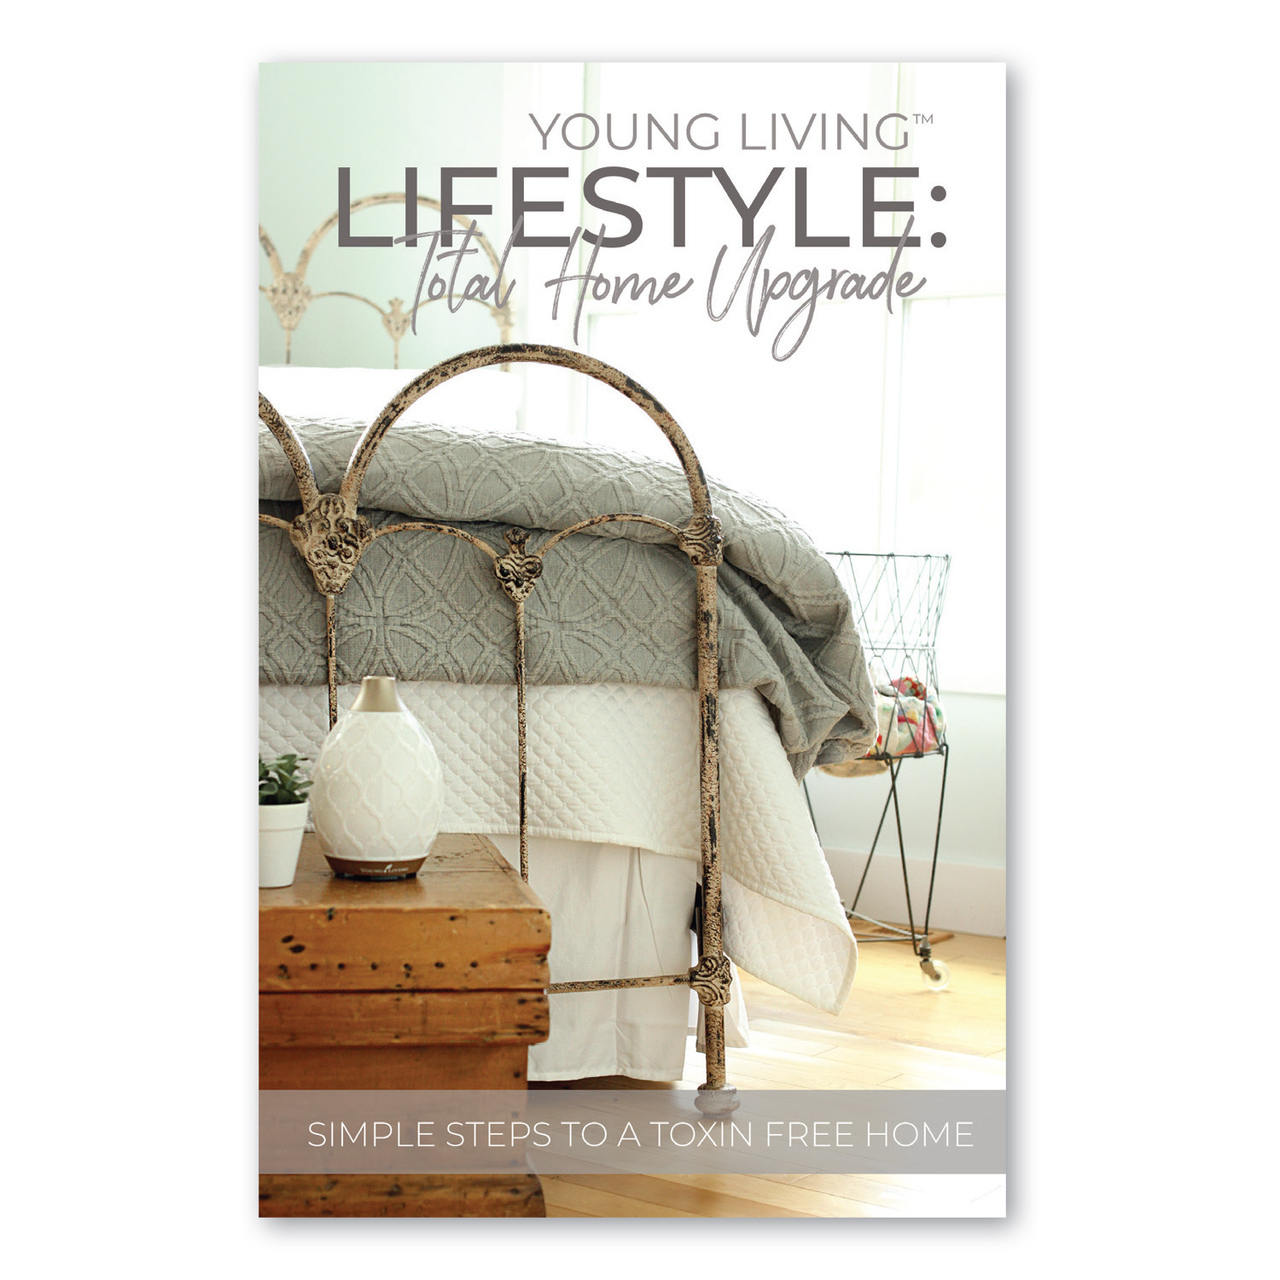 YL LIFESTYLE BOOKLET   This beautiful booklet is another great new member gift! It takes them through each room in their home and shows how they can upgrade things they are already using with our Thieves line!